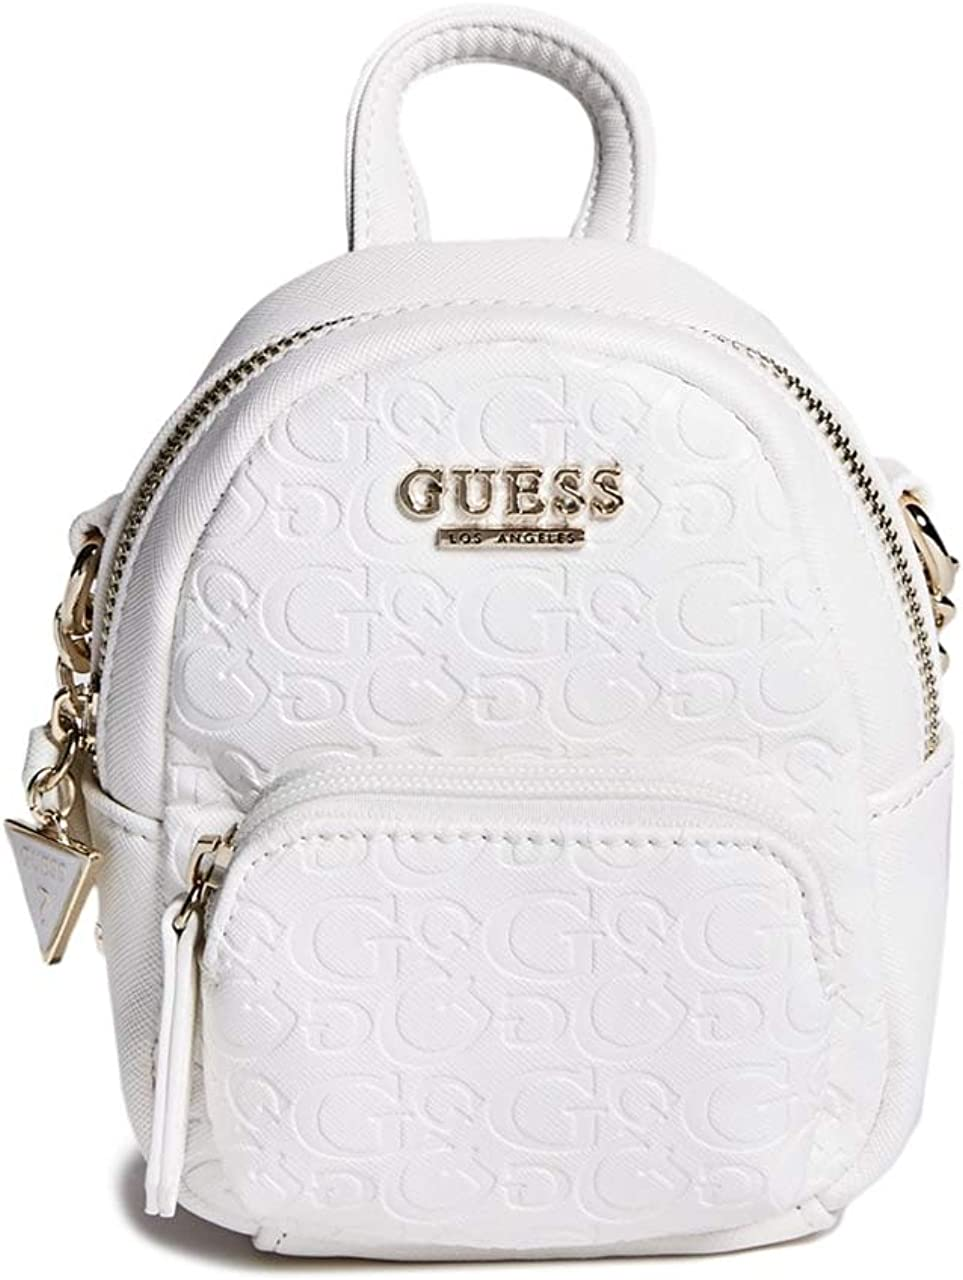 GUESS Factory Women's Evan Mini Crossbody